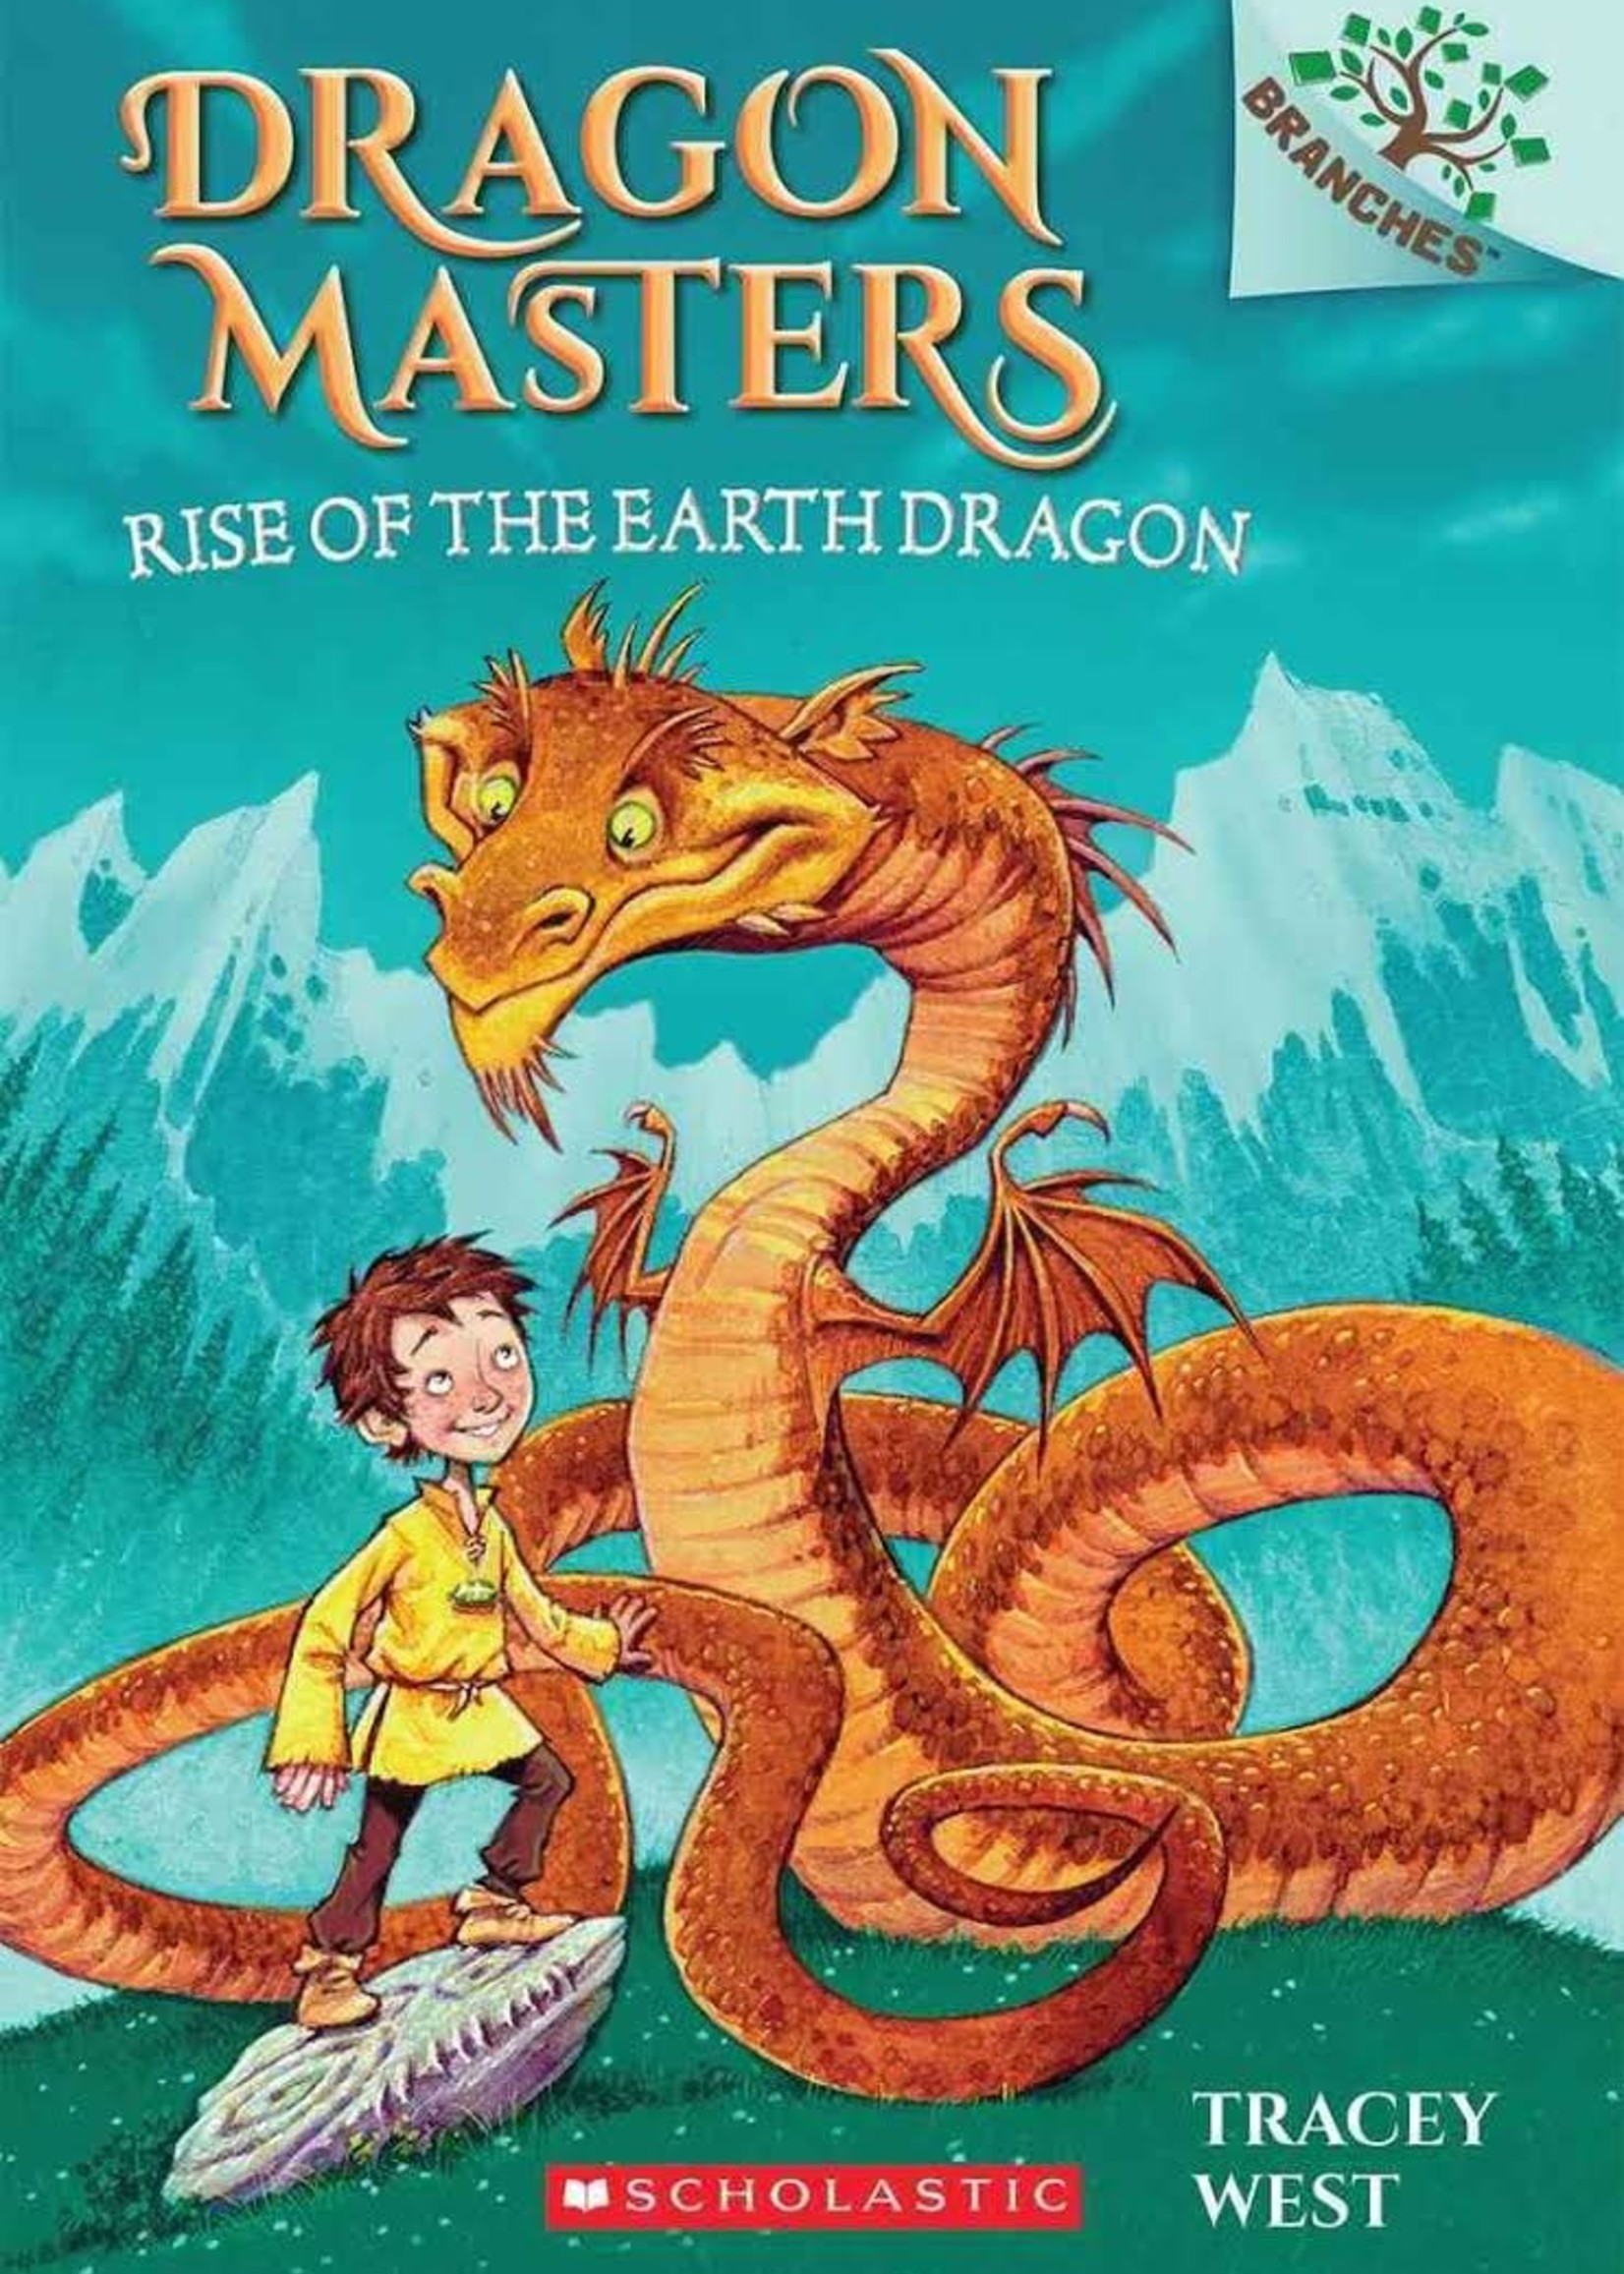 Dragon Masters #01, Rise of the Earth Dragon - Paperback